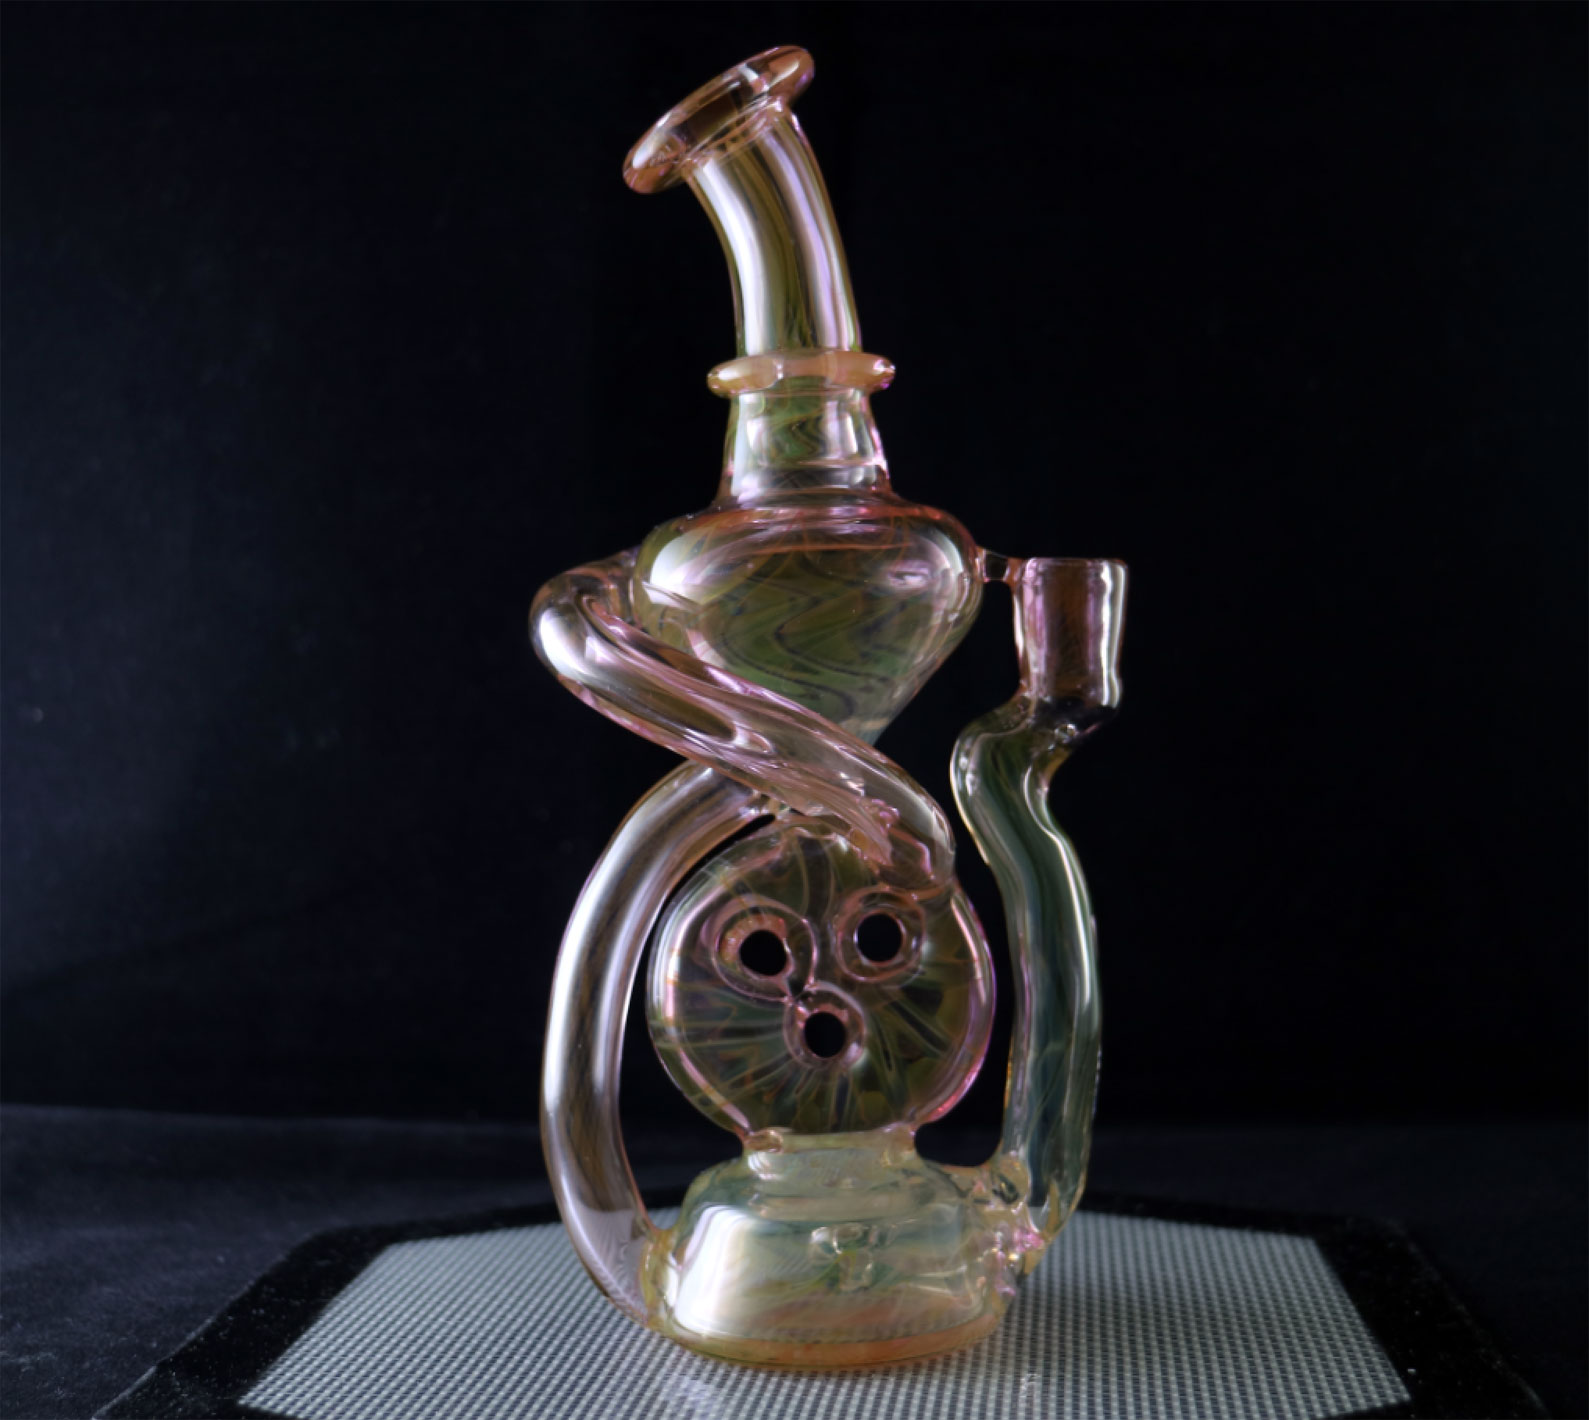 Unlmtd Glass X Collin B – SwissCycler Collab